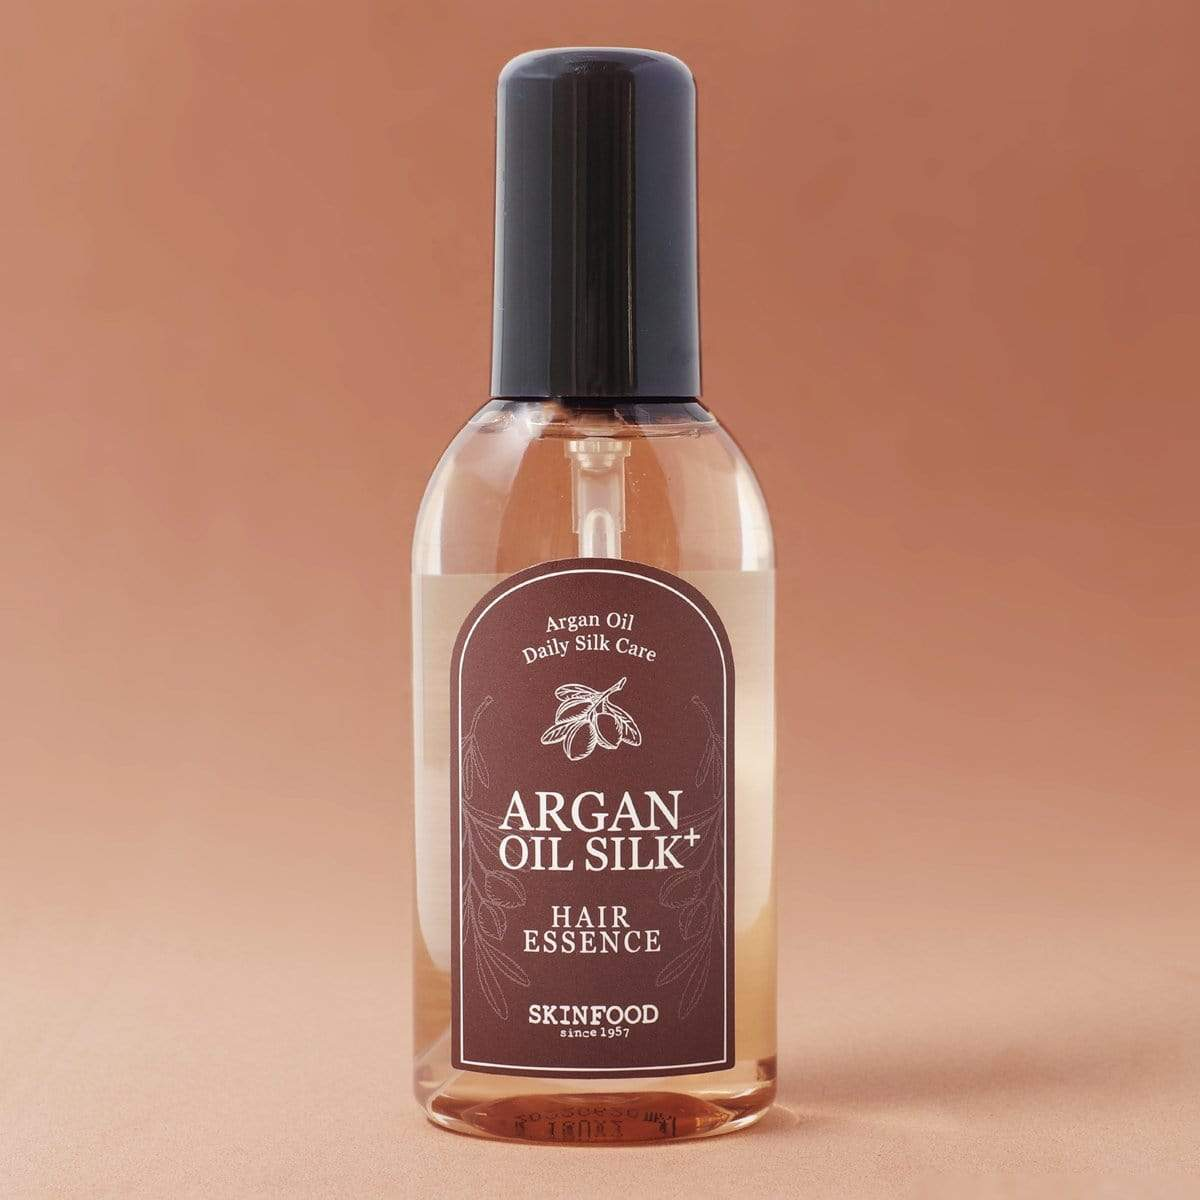 Skinfood Argan Oil Silk Plus Hair Essence